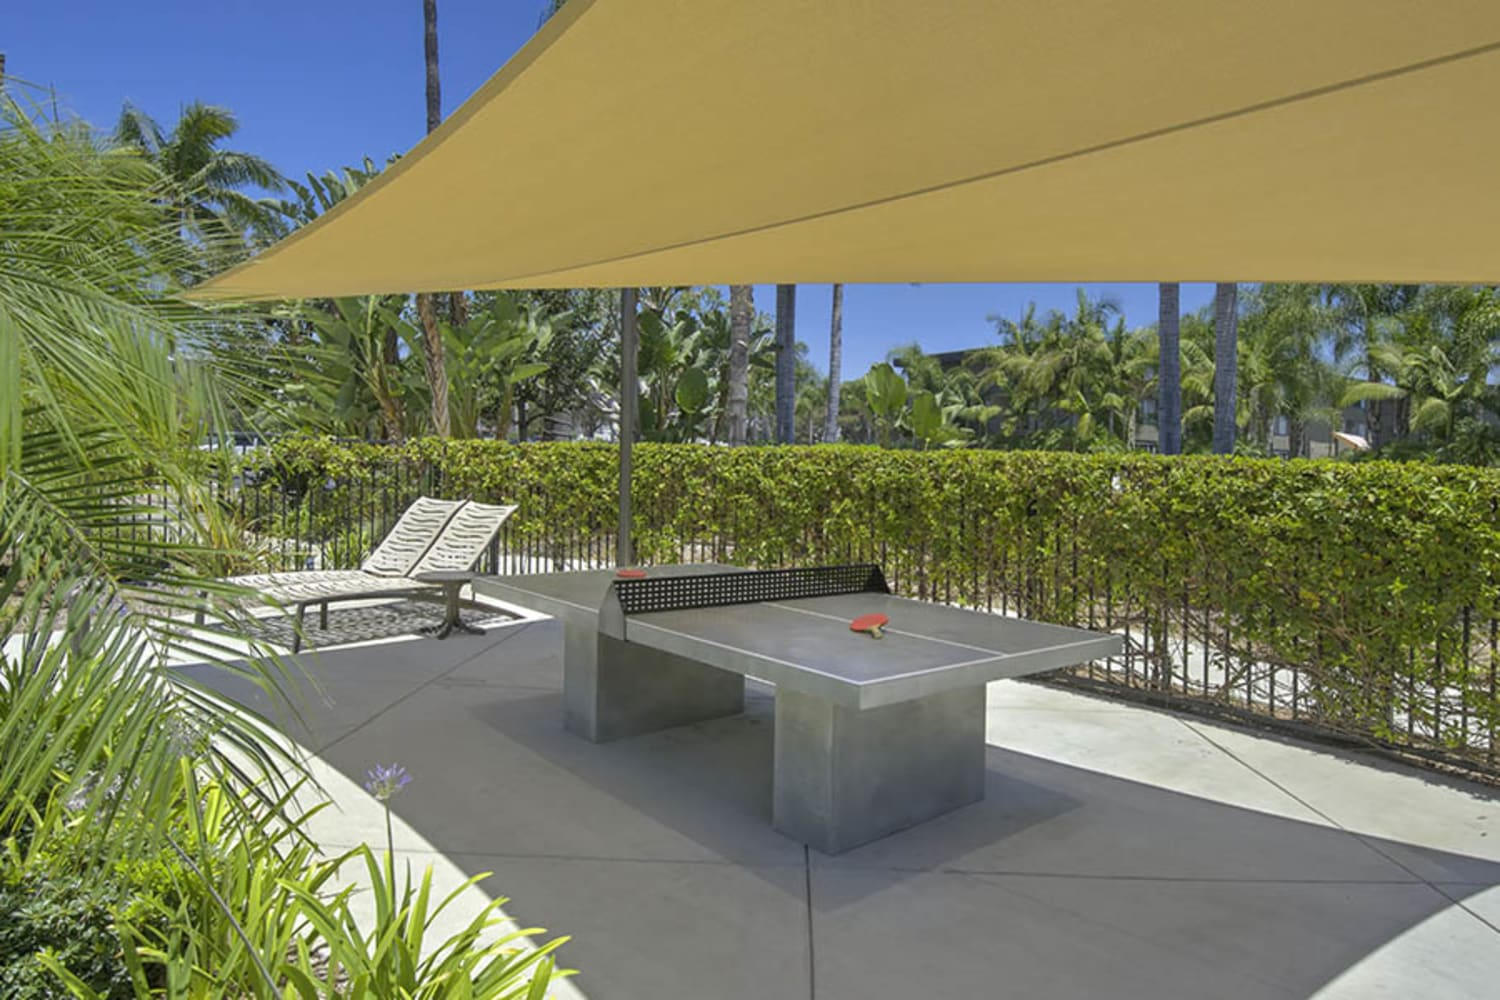 UCA Apartment Homes in Fullerton, California, offer an outdoor table tennis area